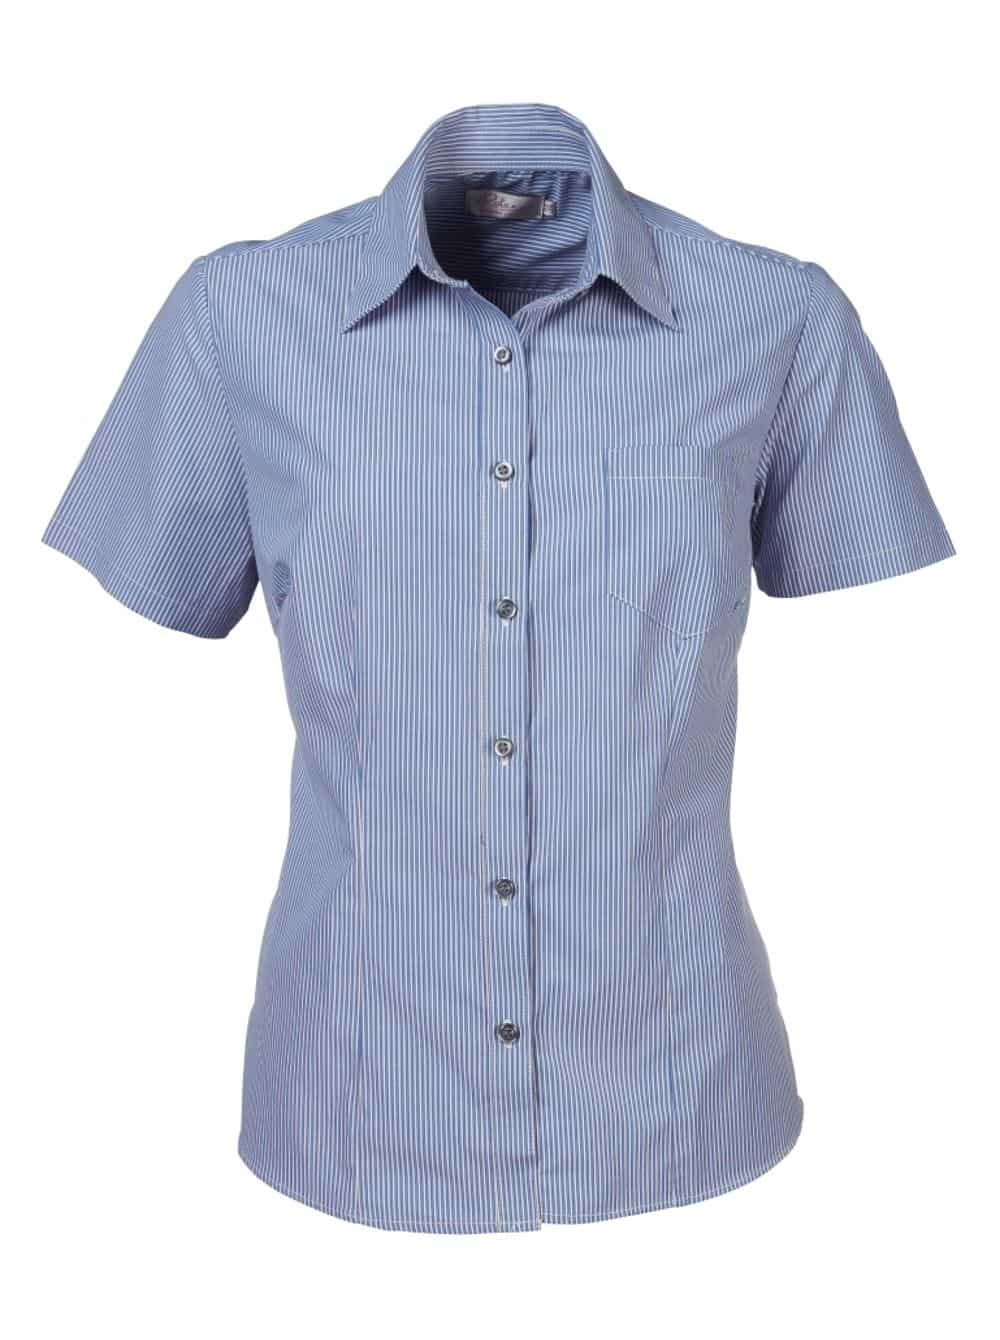 Blouse Wendy Short Sleeve Lounge Shirts and Blouses